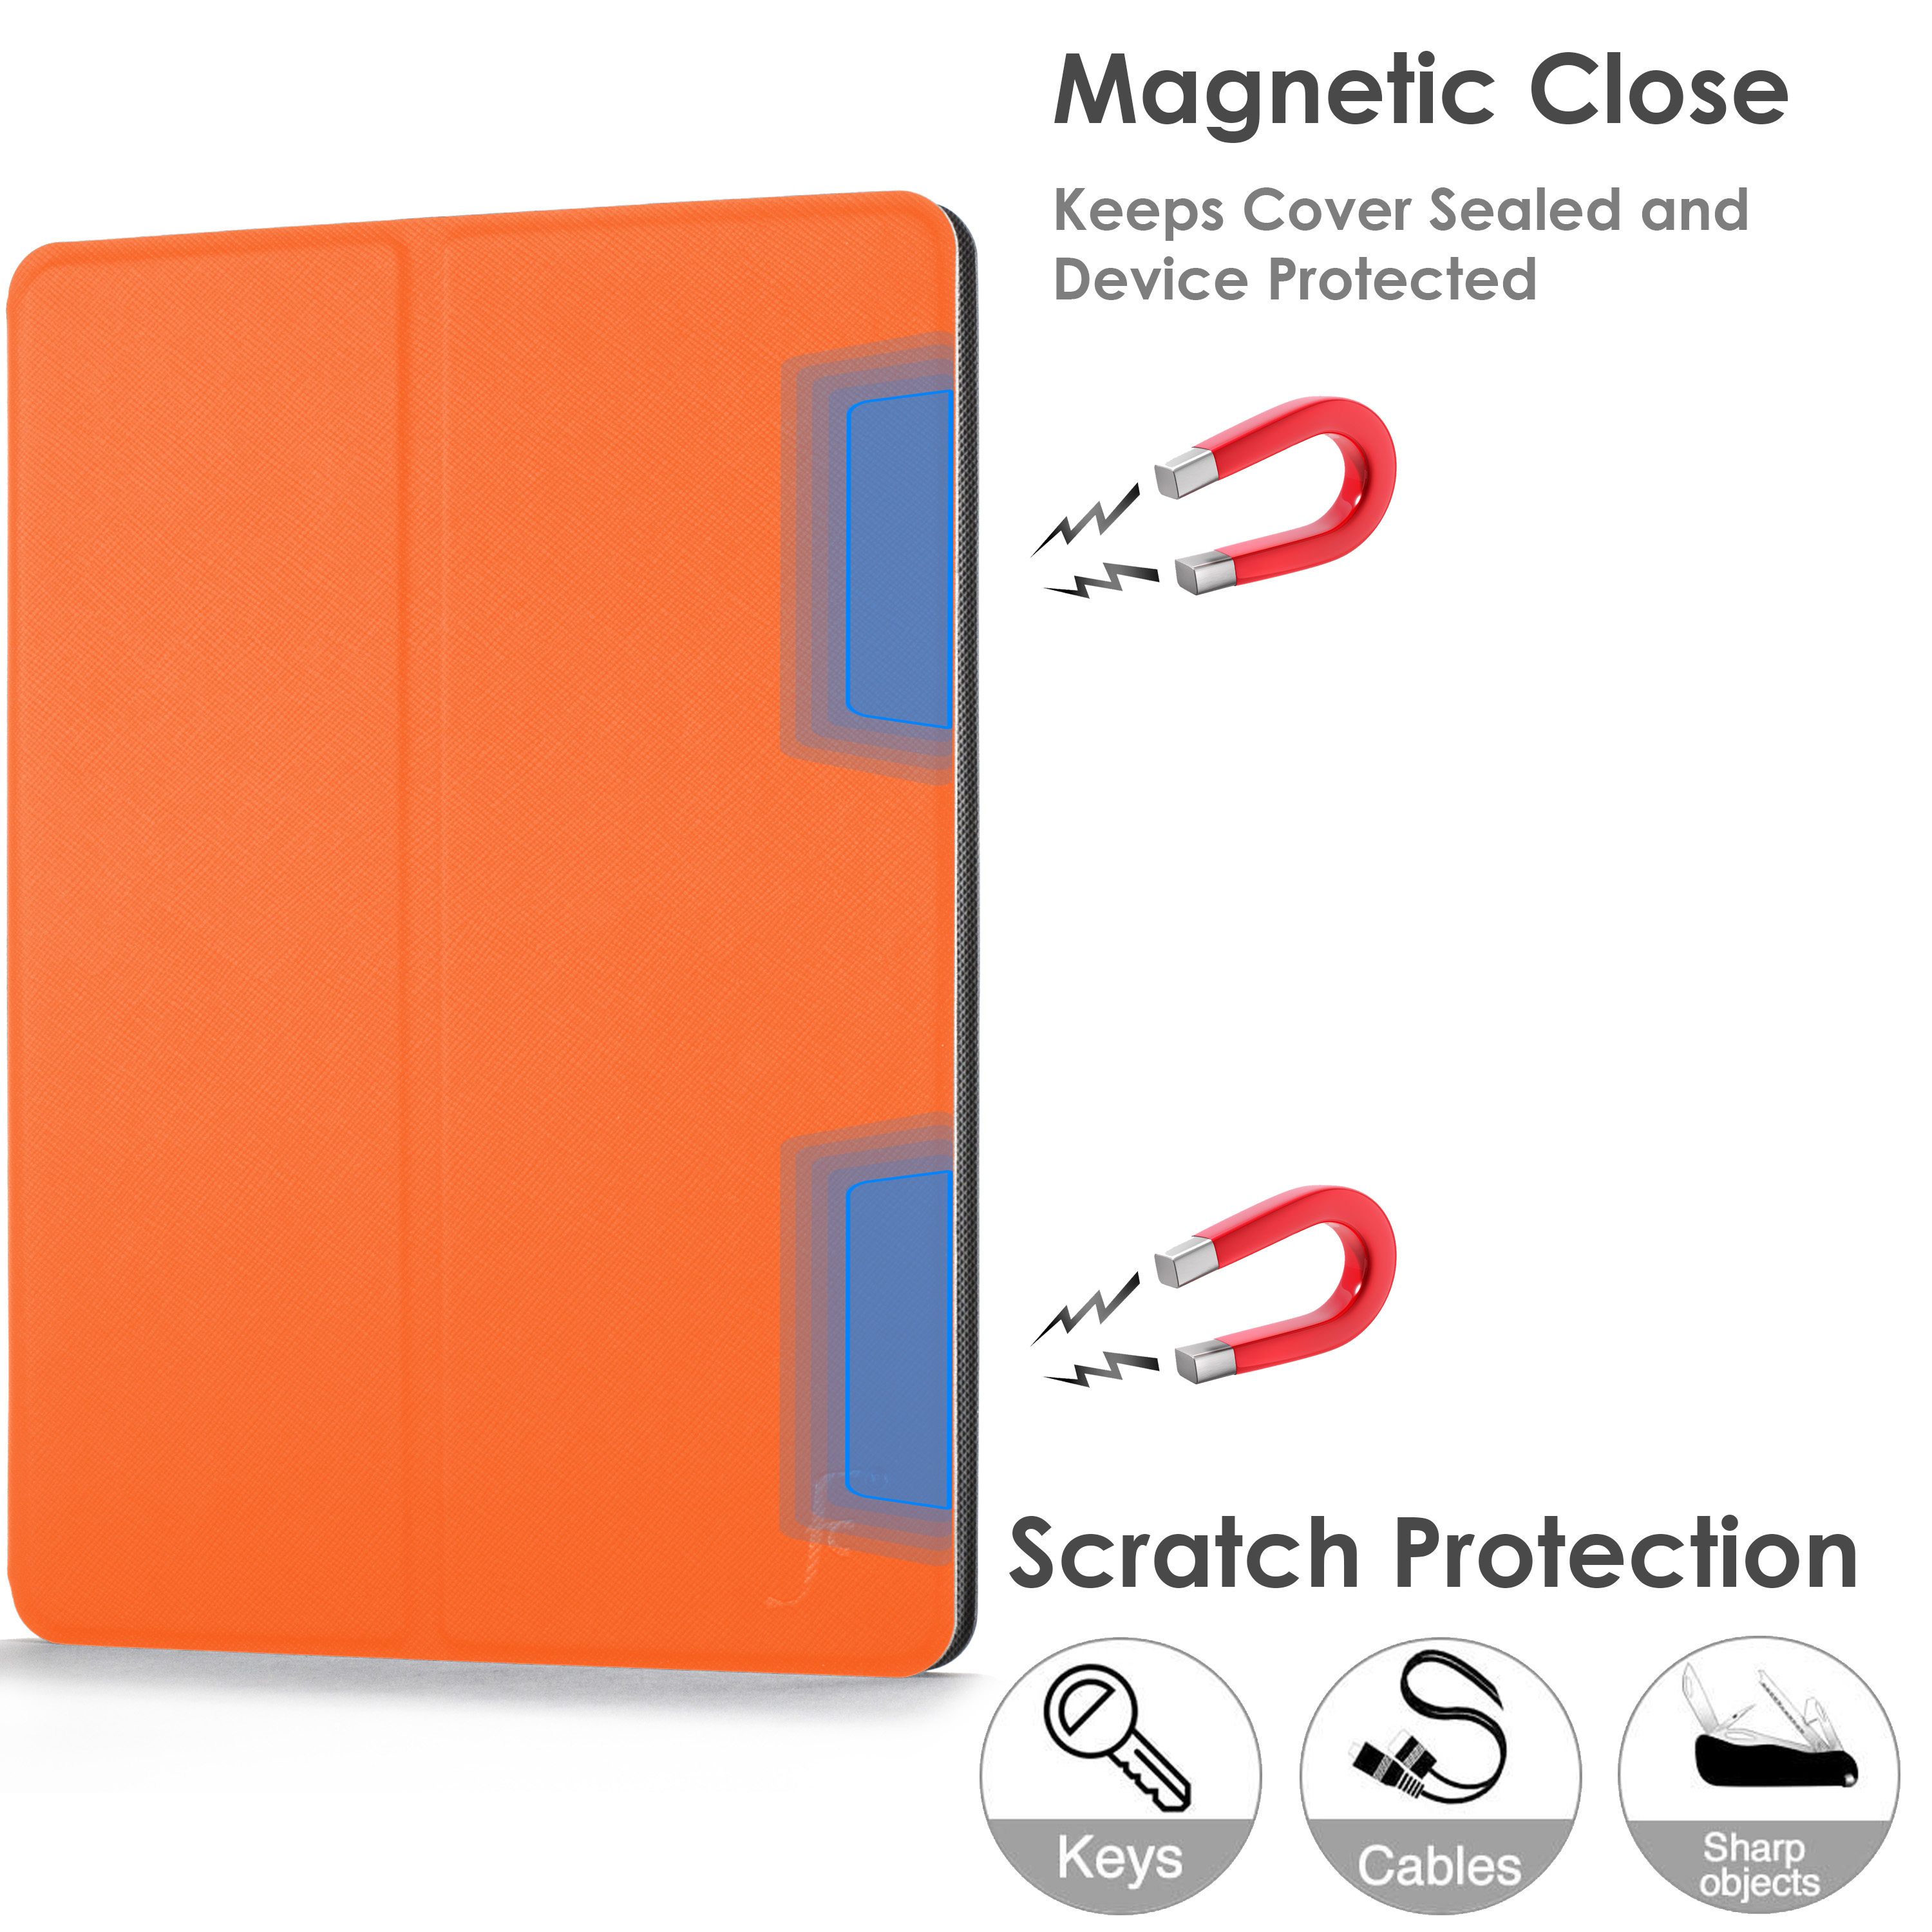 miniature 47 - Samsung Galaxy Tab A 10.1 2019 Étui Magnétique Protection & Support + Stylet